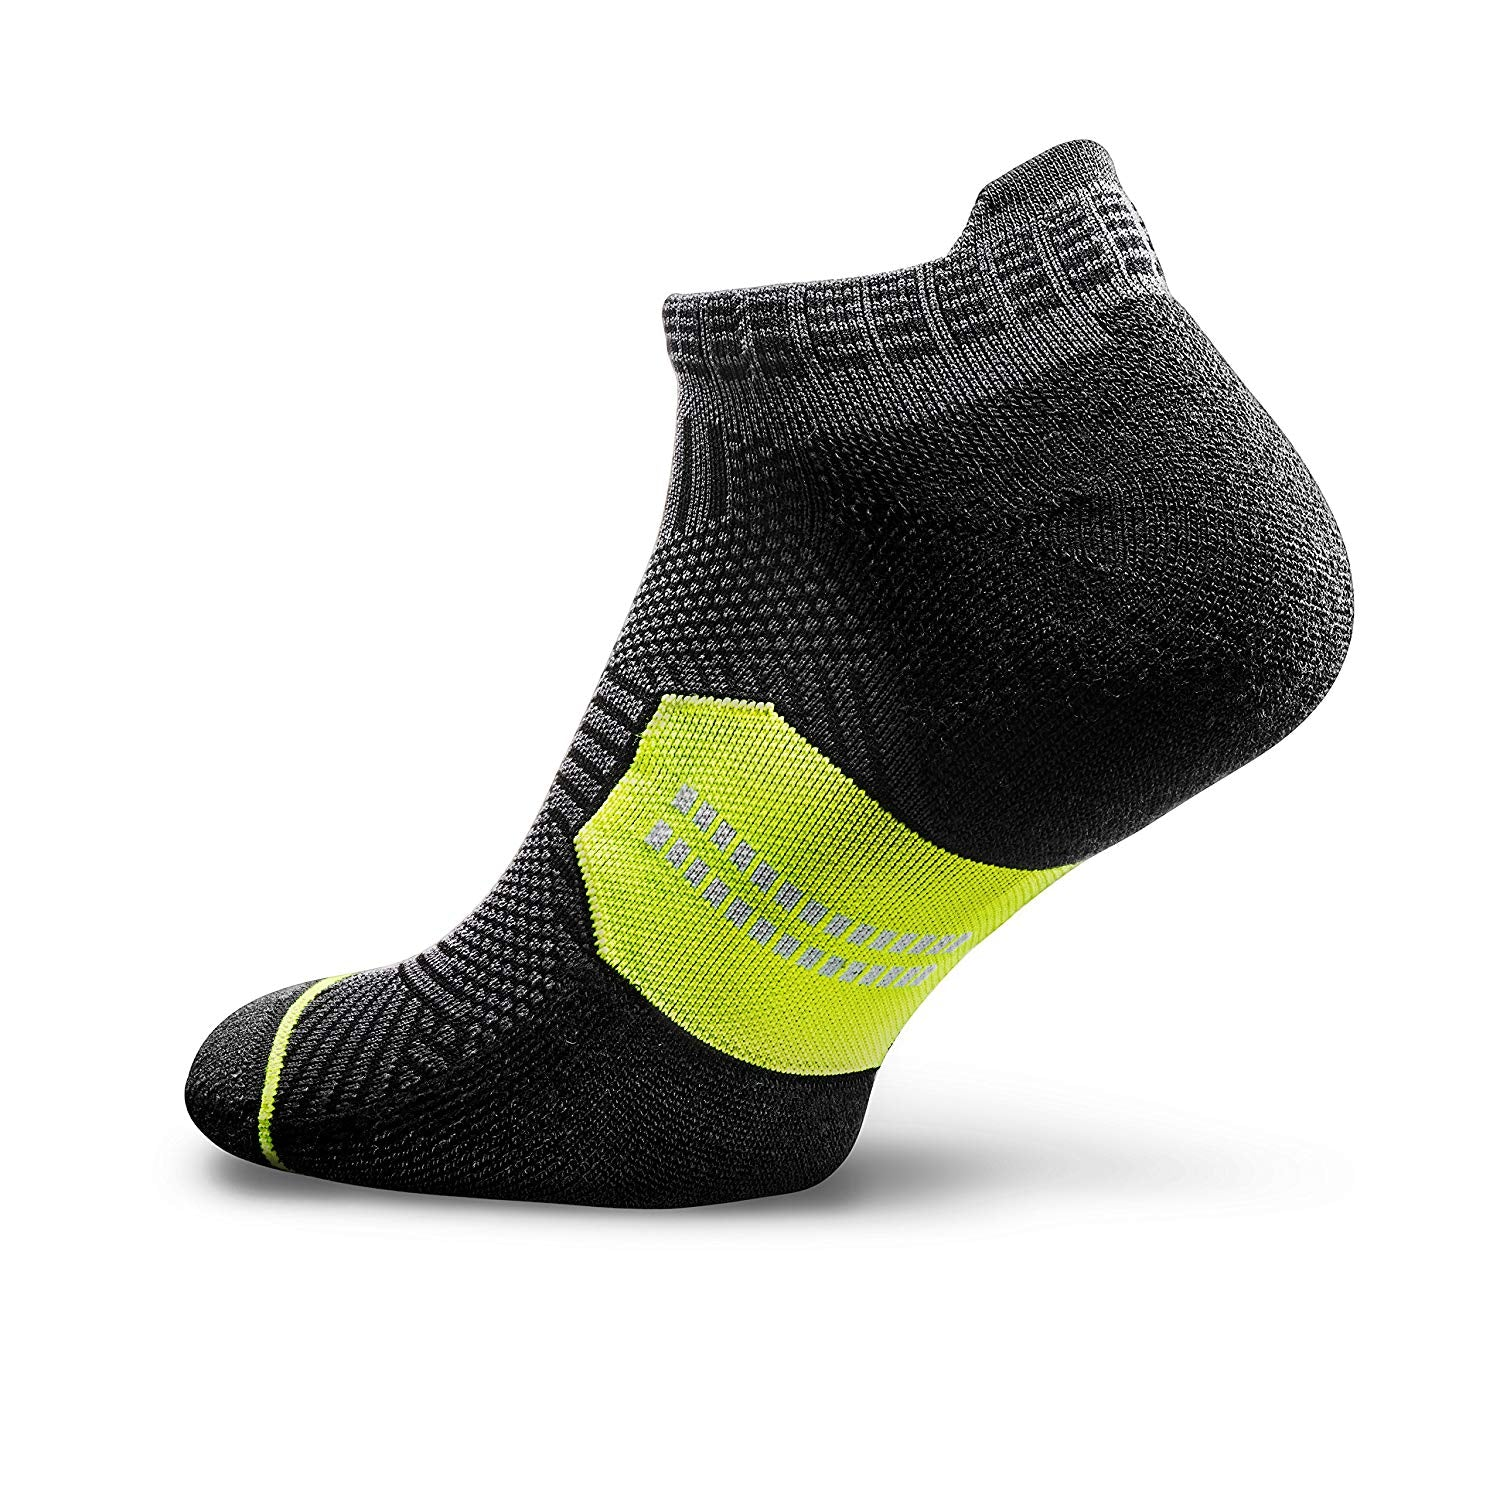 Accelerate New Crescent Socks - Black/Lime